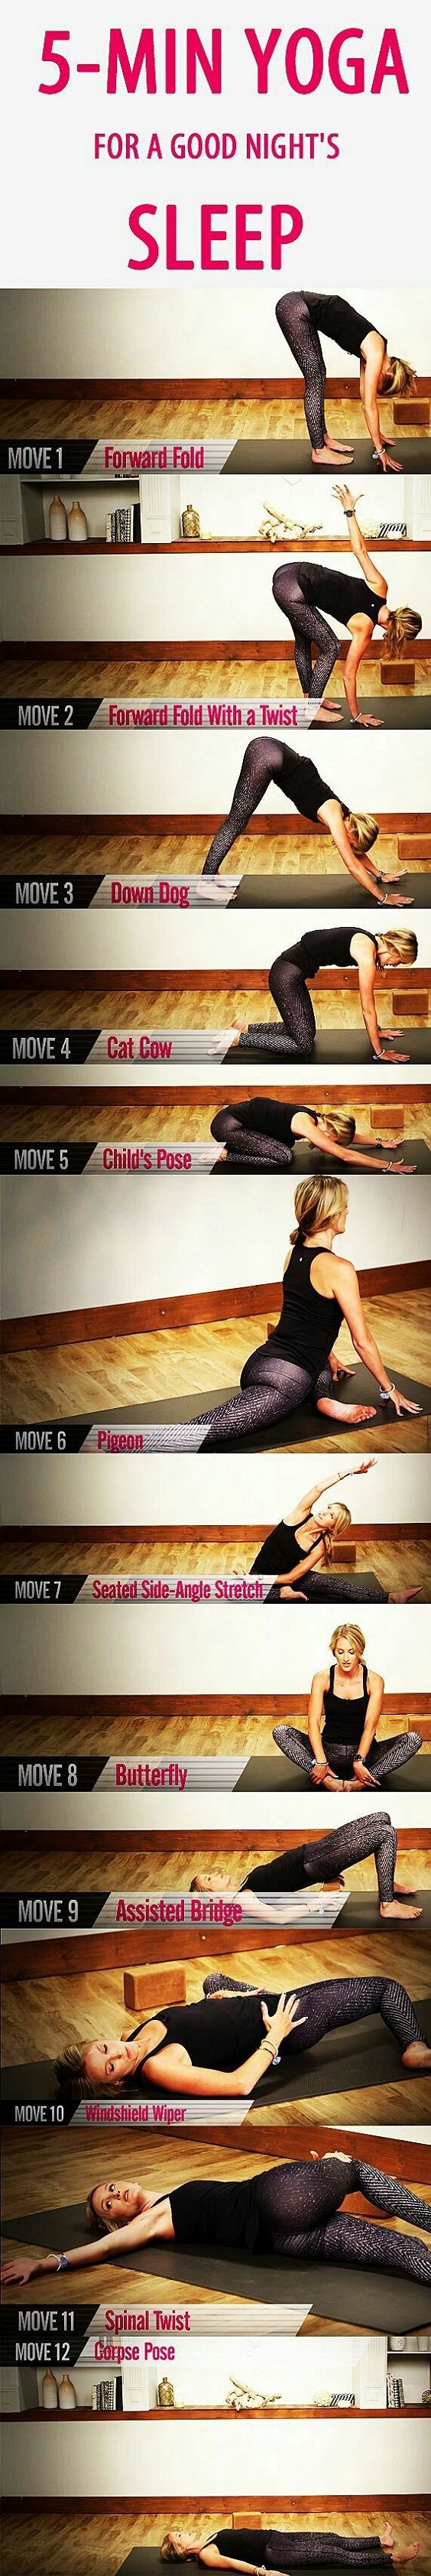 8 Lazy Girl Workouts To Do In Just 5 Minutes